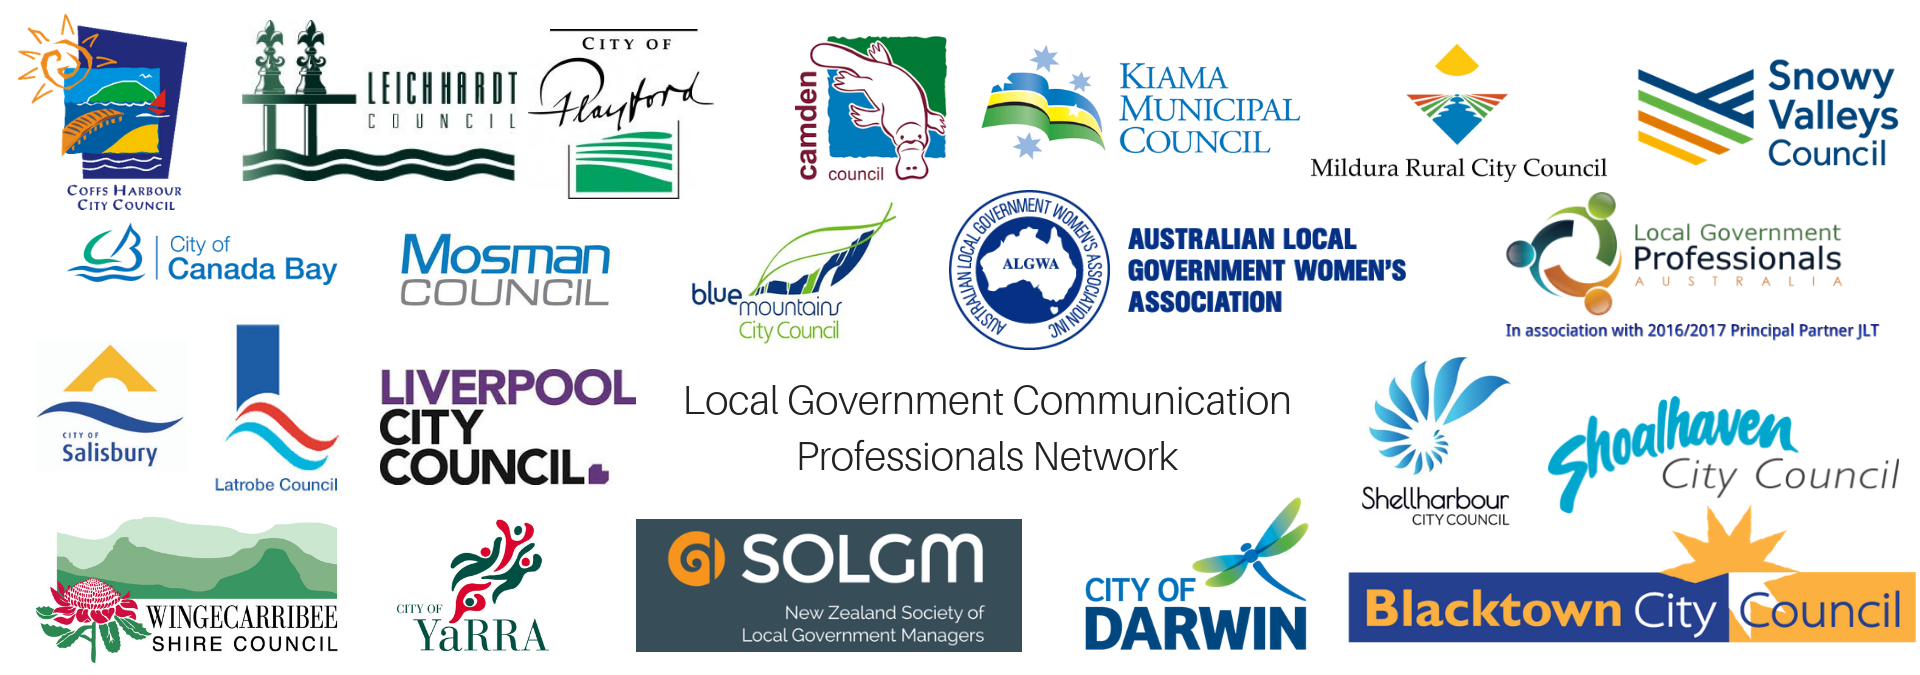 Local Government Communication Professionals Network.png